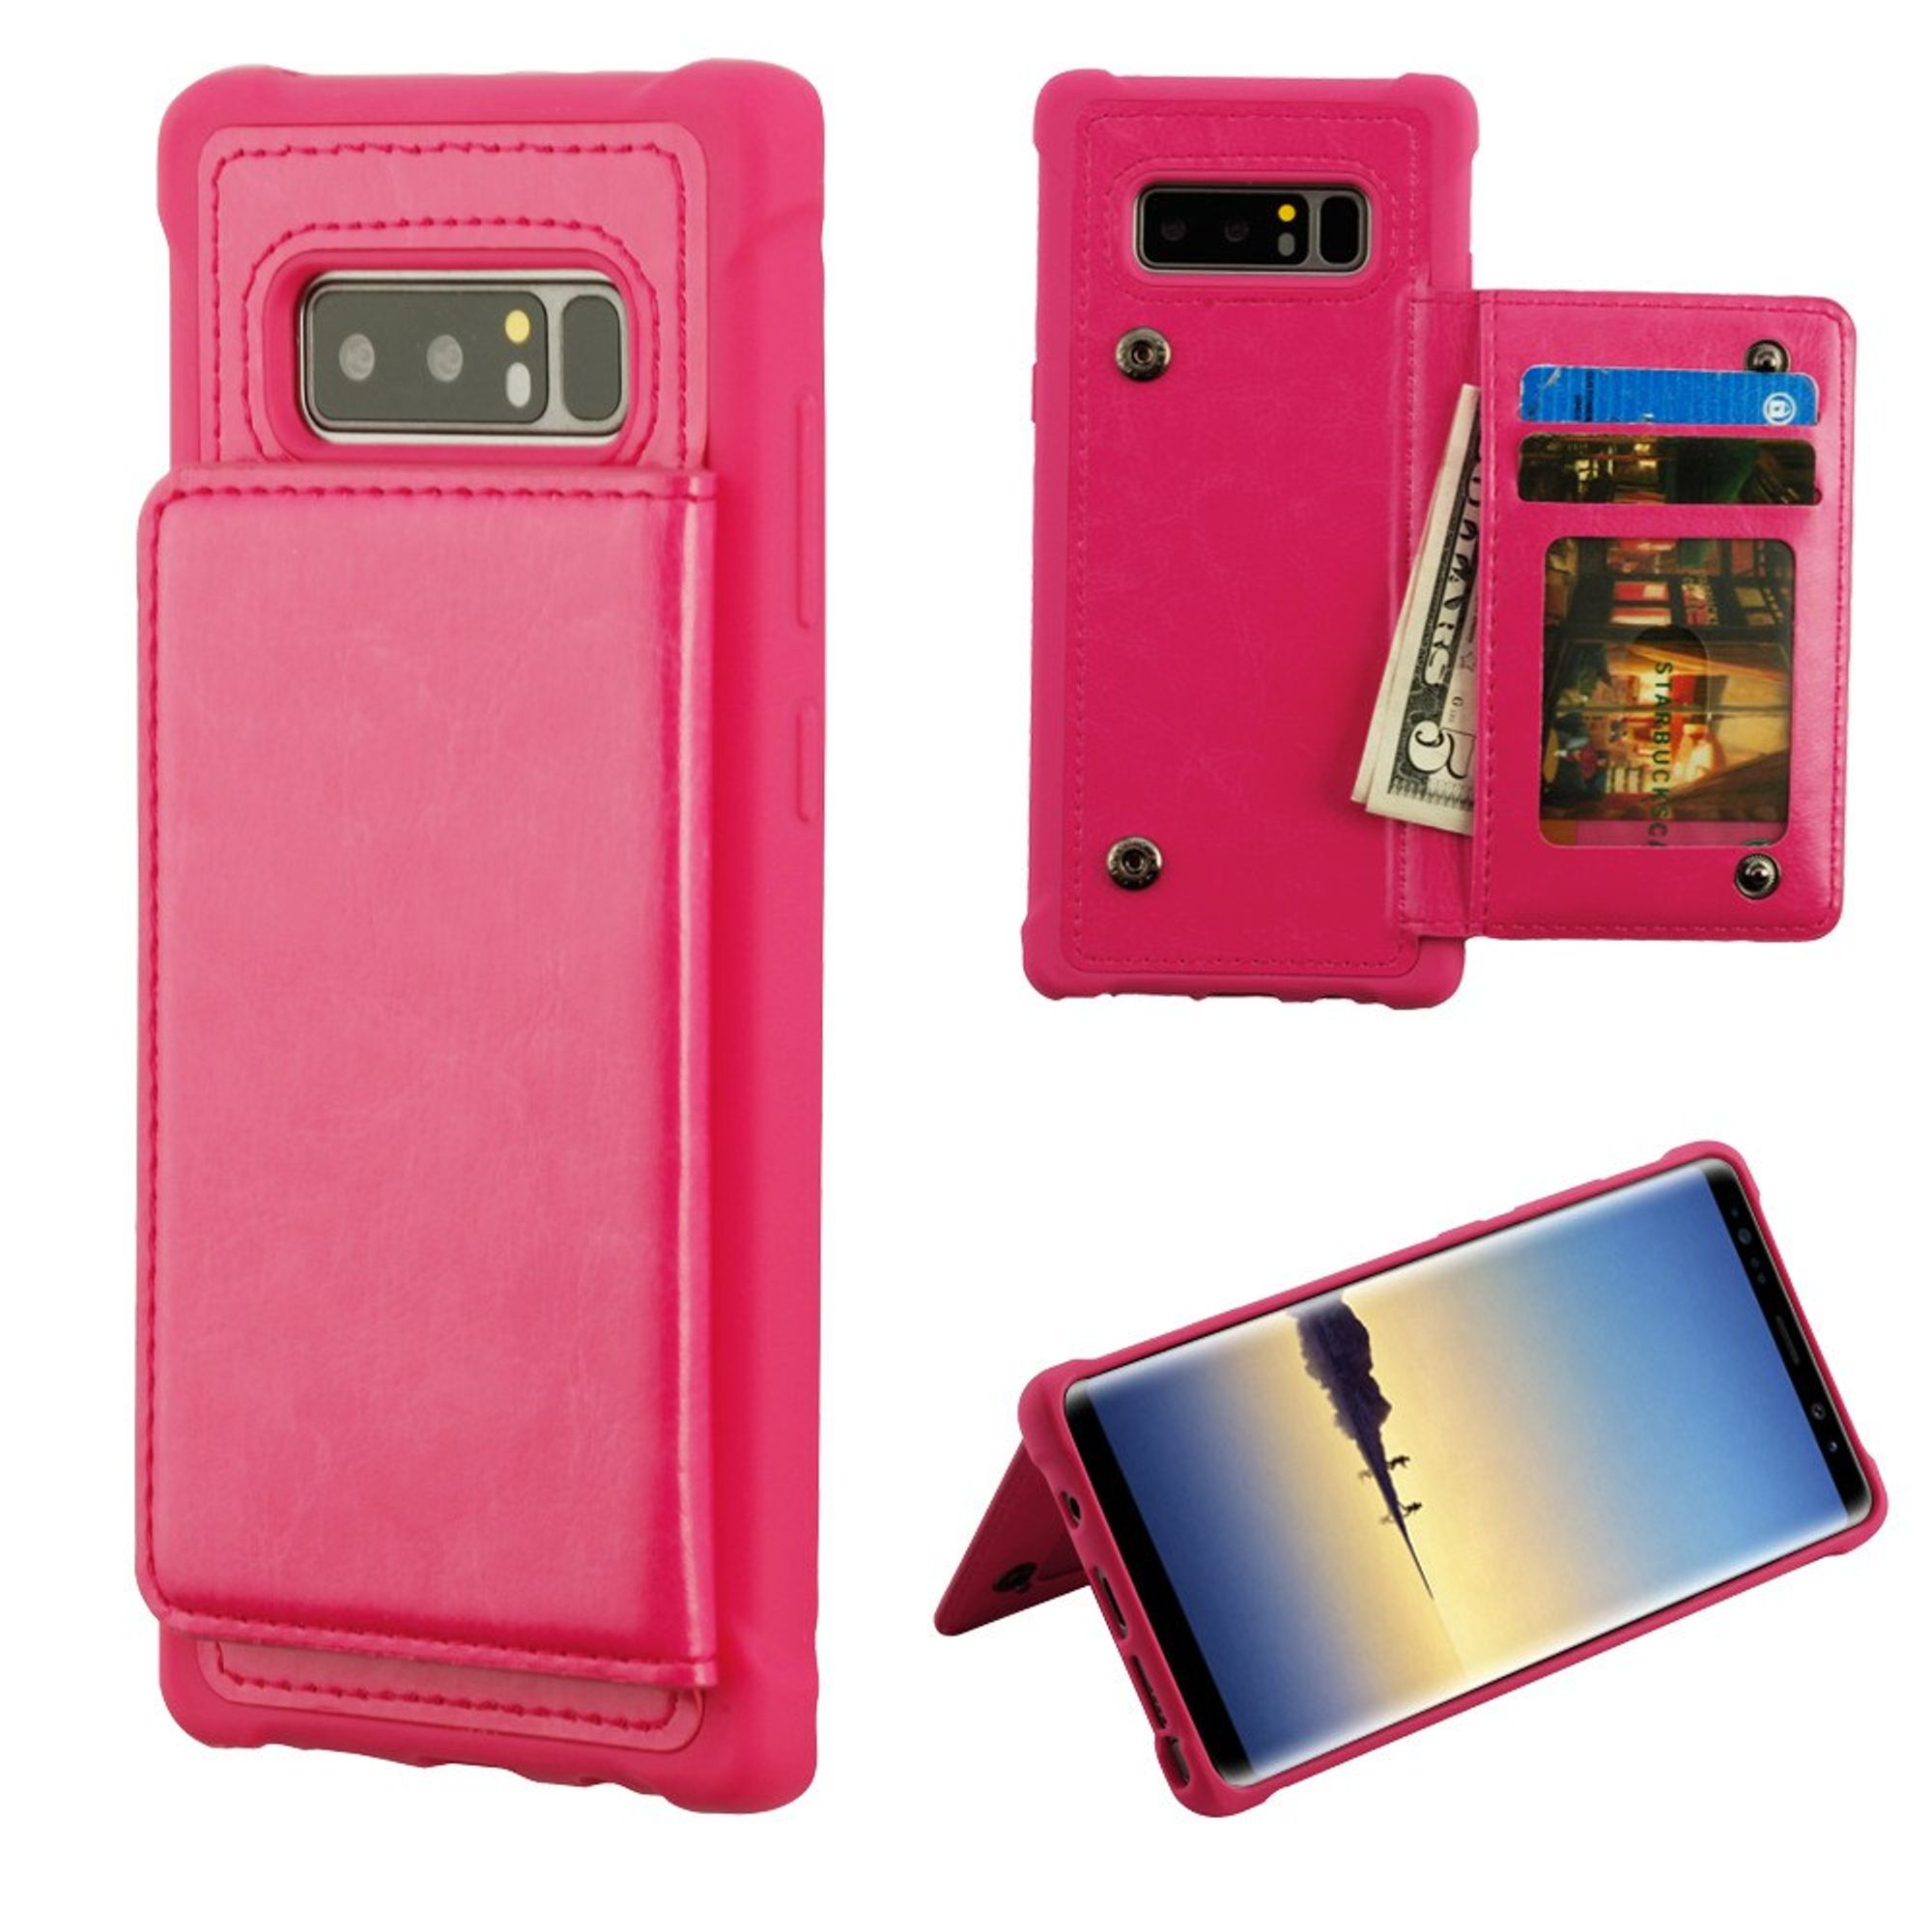 MyBat Executive Protector Stand Leather [Card Holder Slot] Wallet Pouch Case Cover For Samsung Galaxy Note 8, Hot Pink